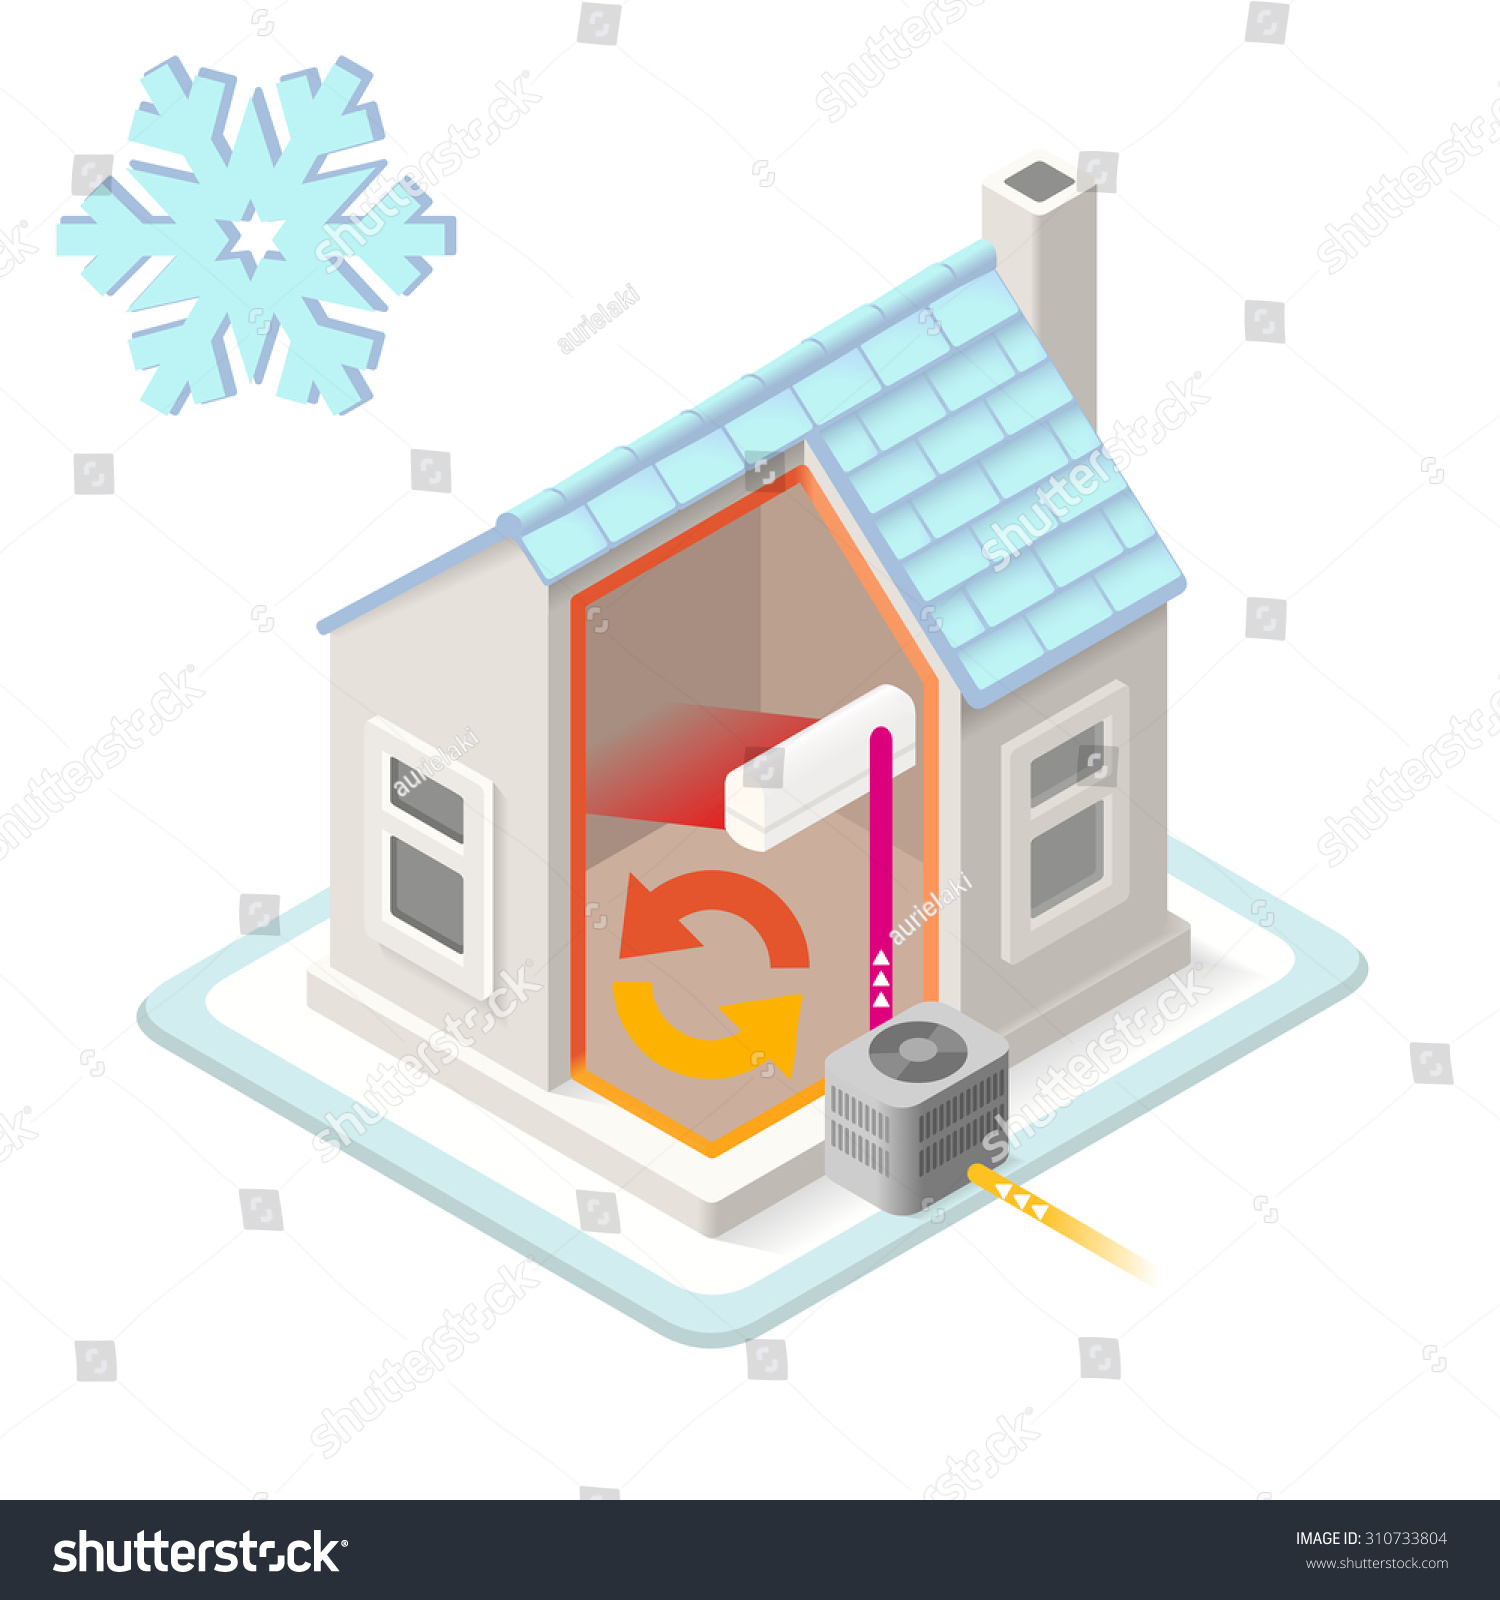 home air conditioning diagram. home heating system air conditioning unit house heat pump infographic. isometric building 3d diagram